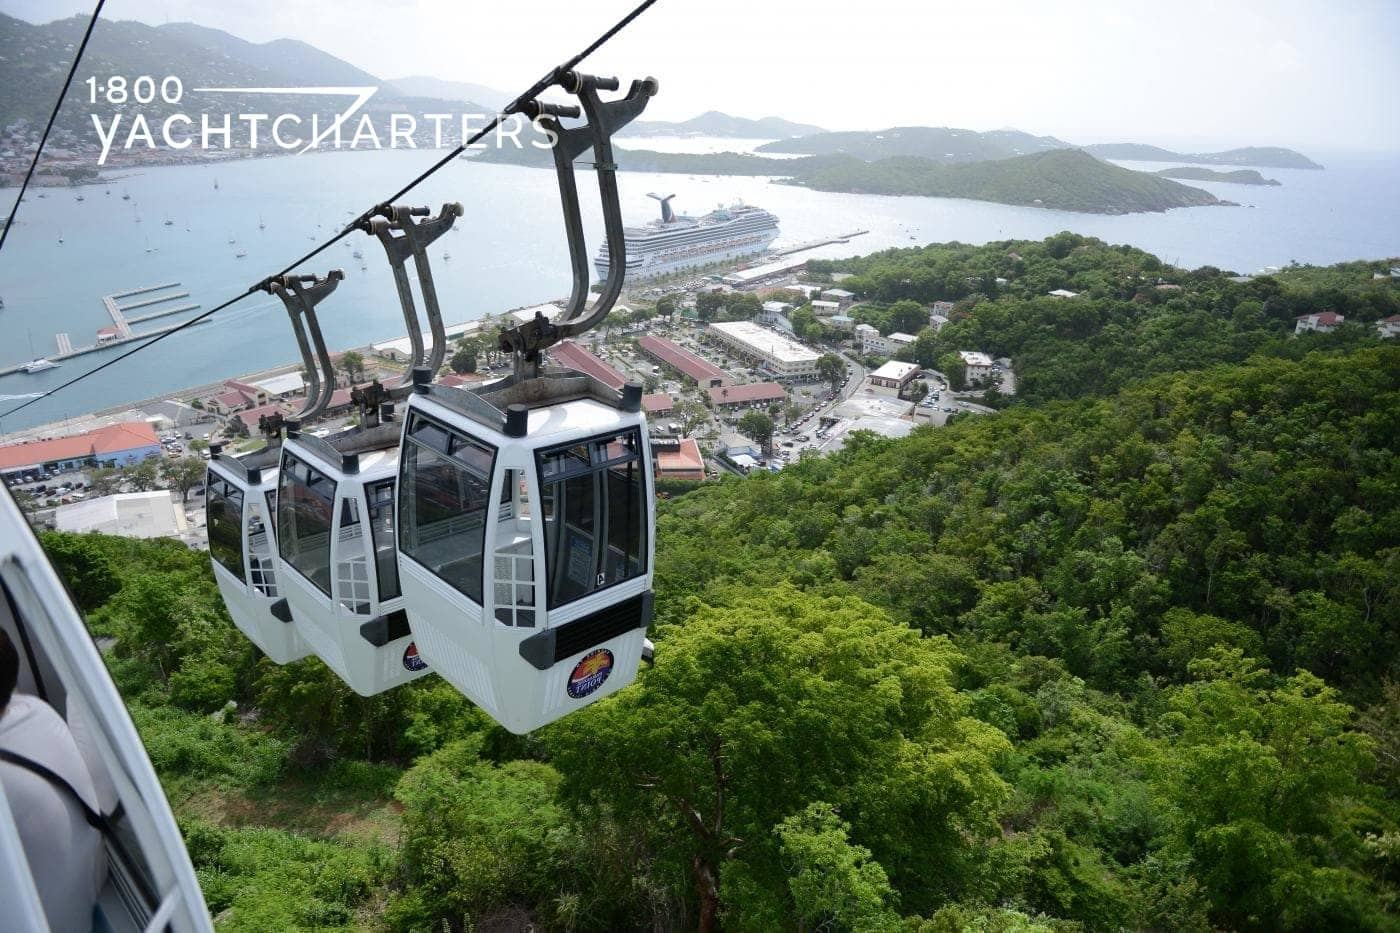 Photograph of the skyride above Charlotte Amalie marina in St. Thomas, USVI